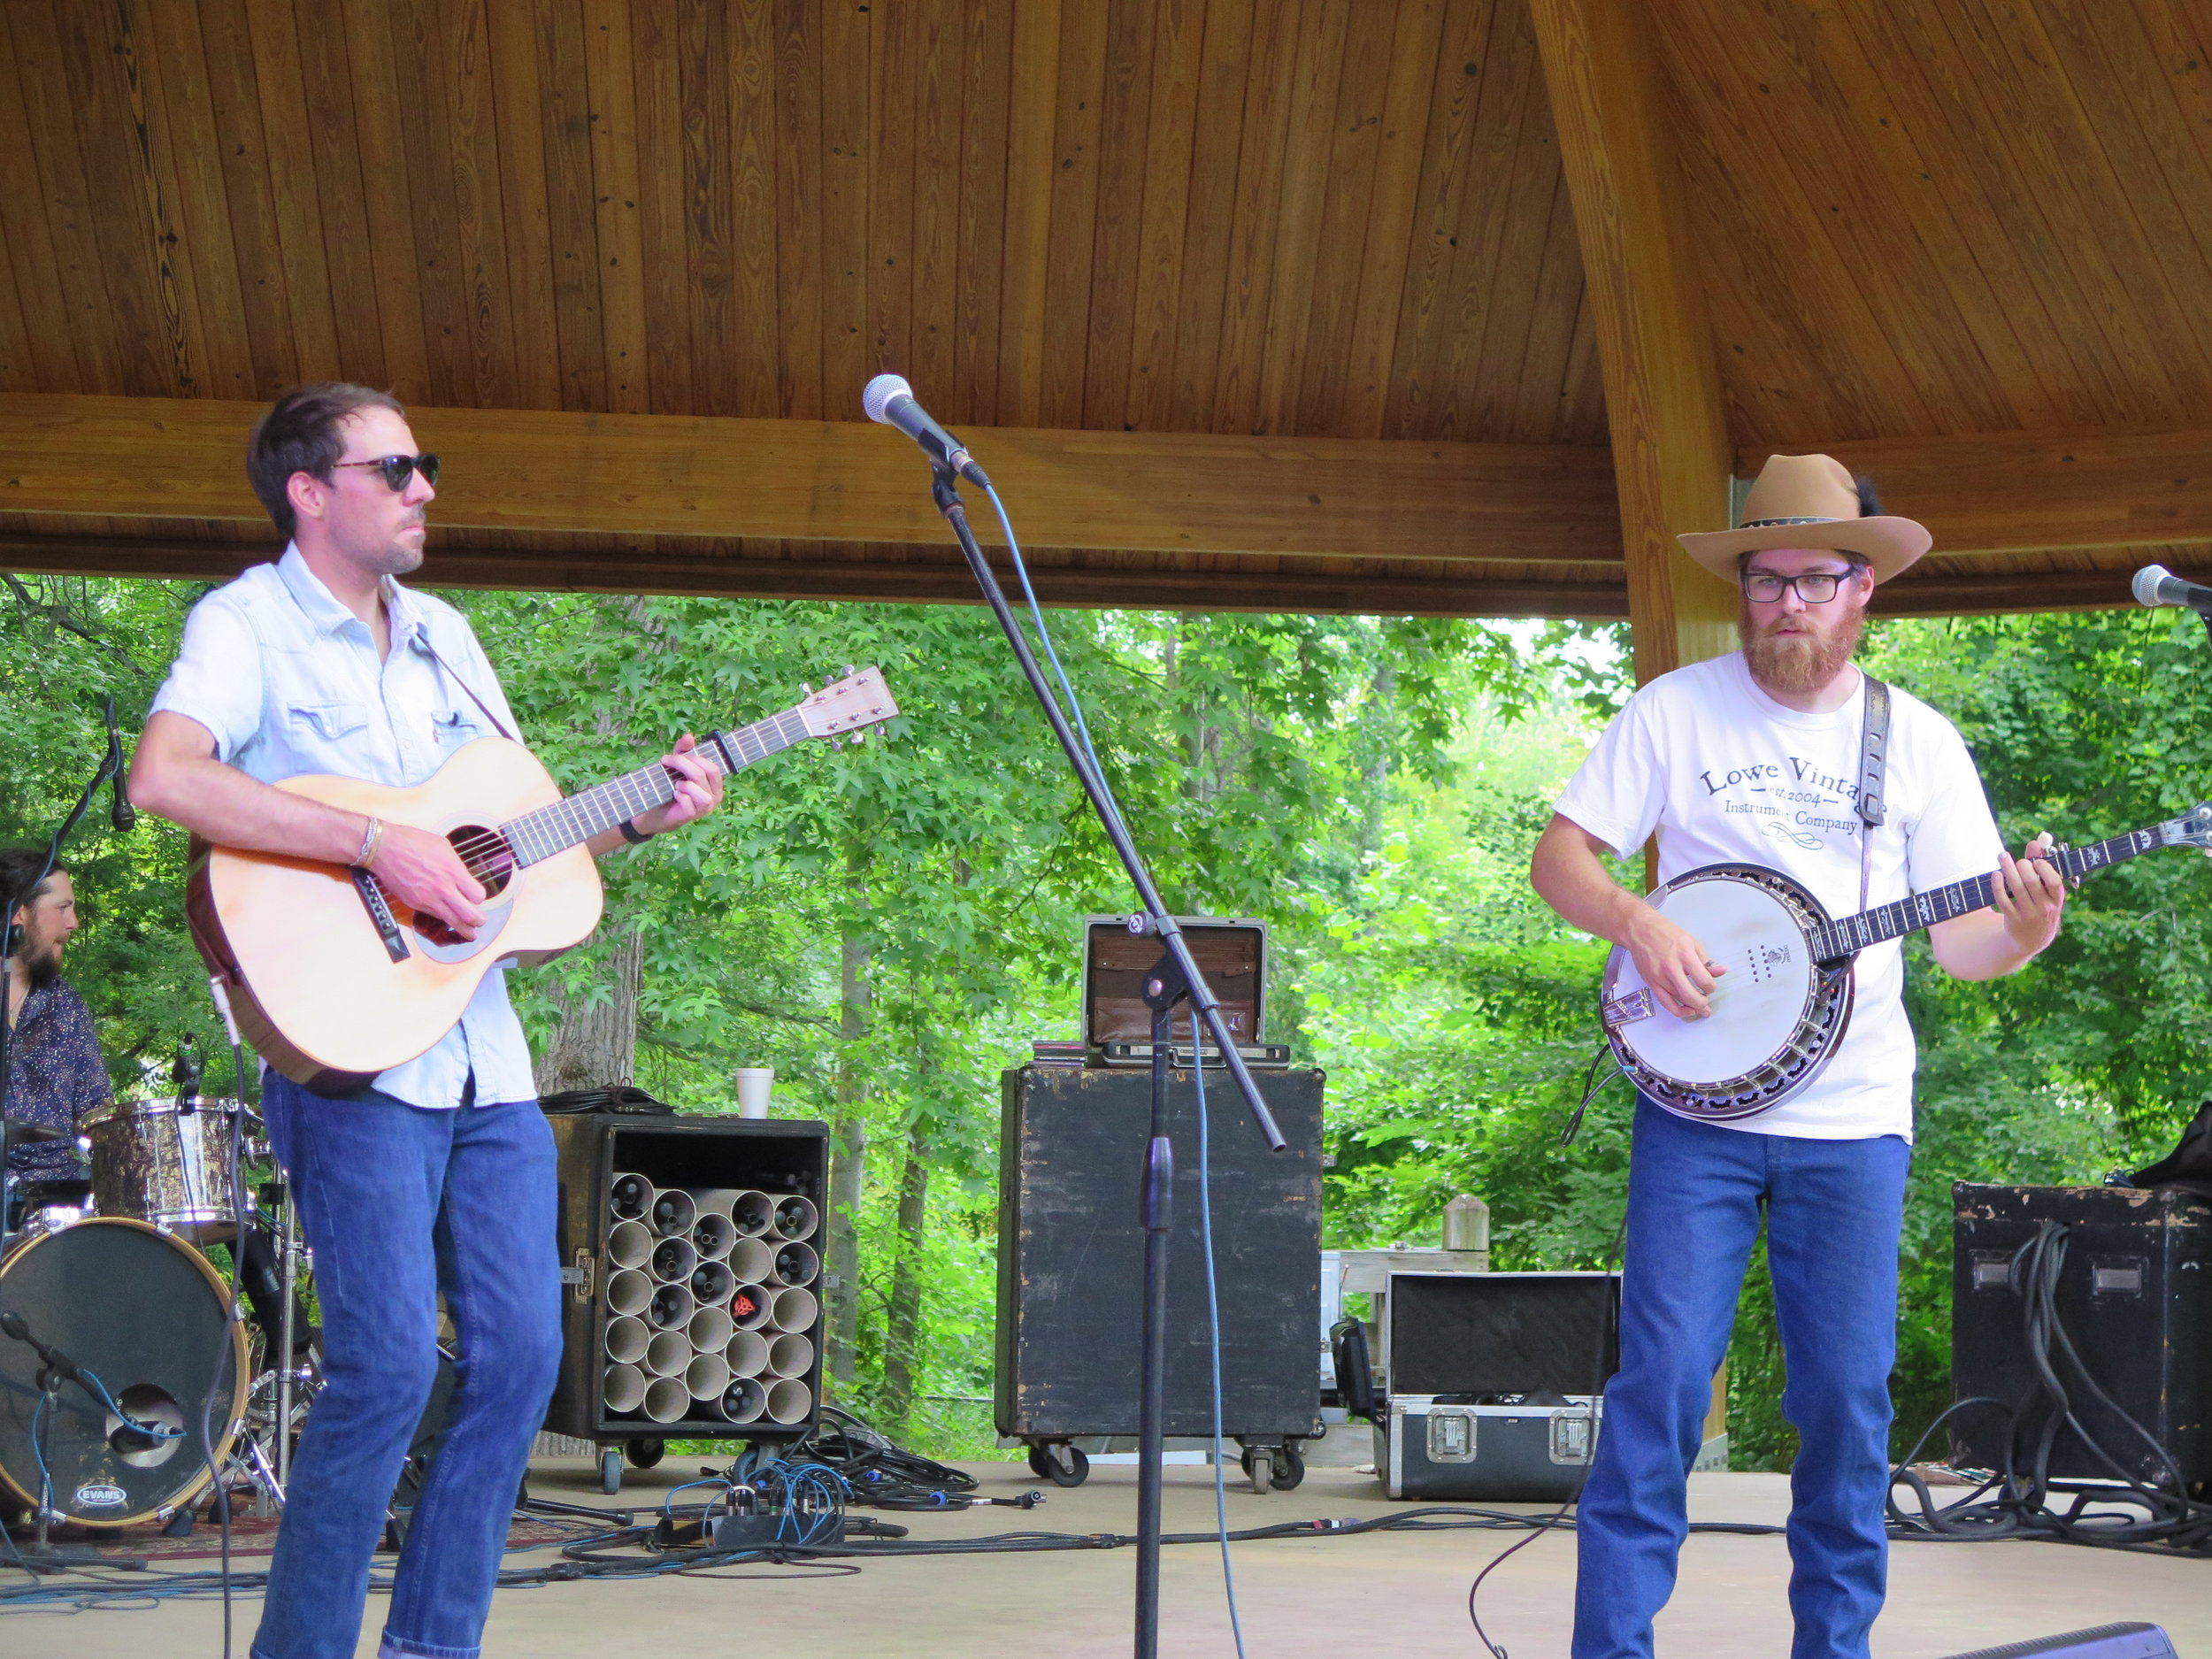 Time Sawyer   plays in Burlington, NC 6-8-18, with Sam Tayloe on acoustic guitar and Houston Norris on banjo